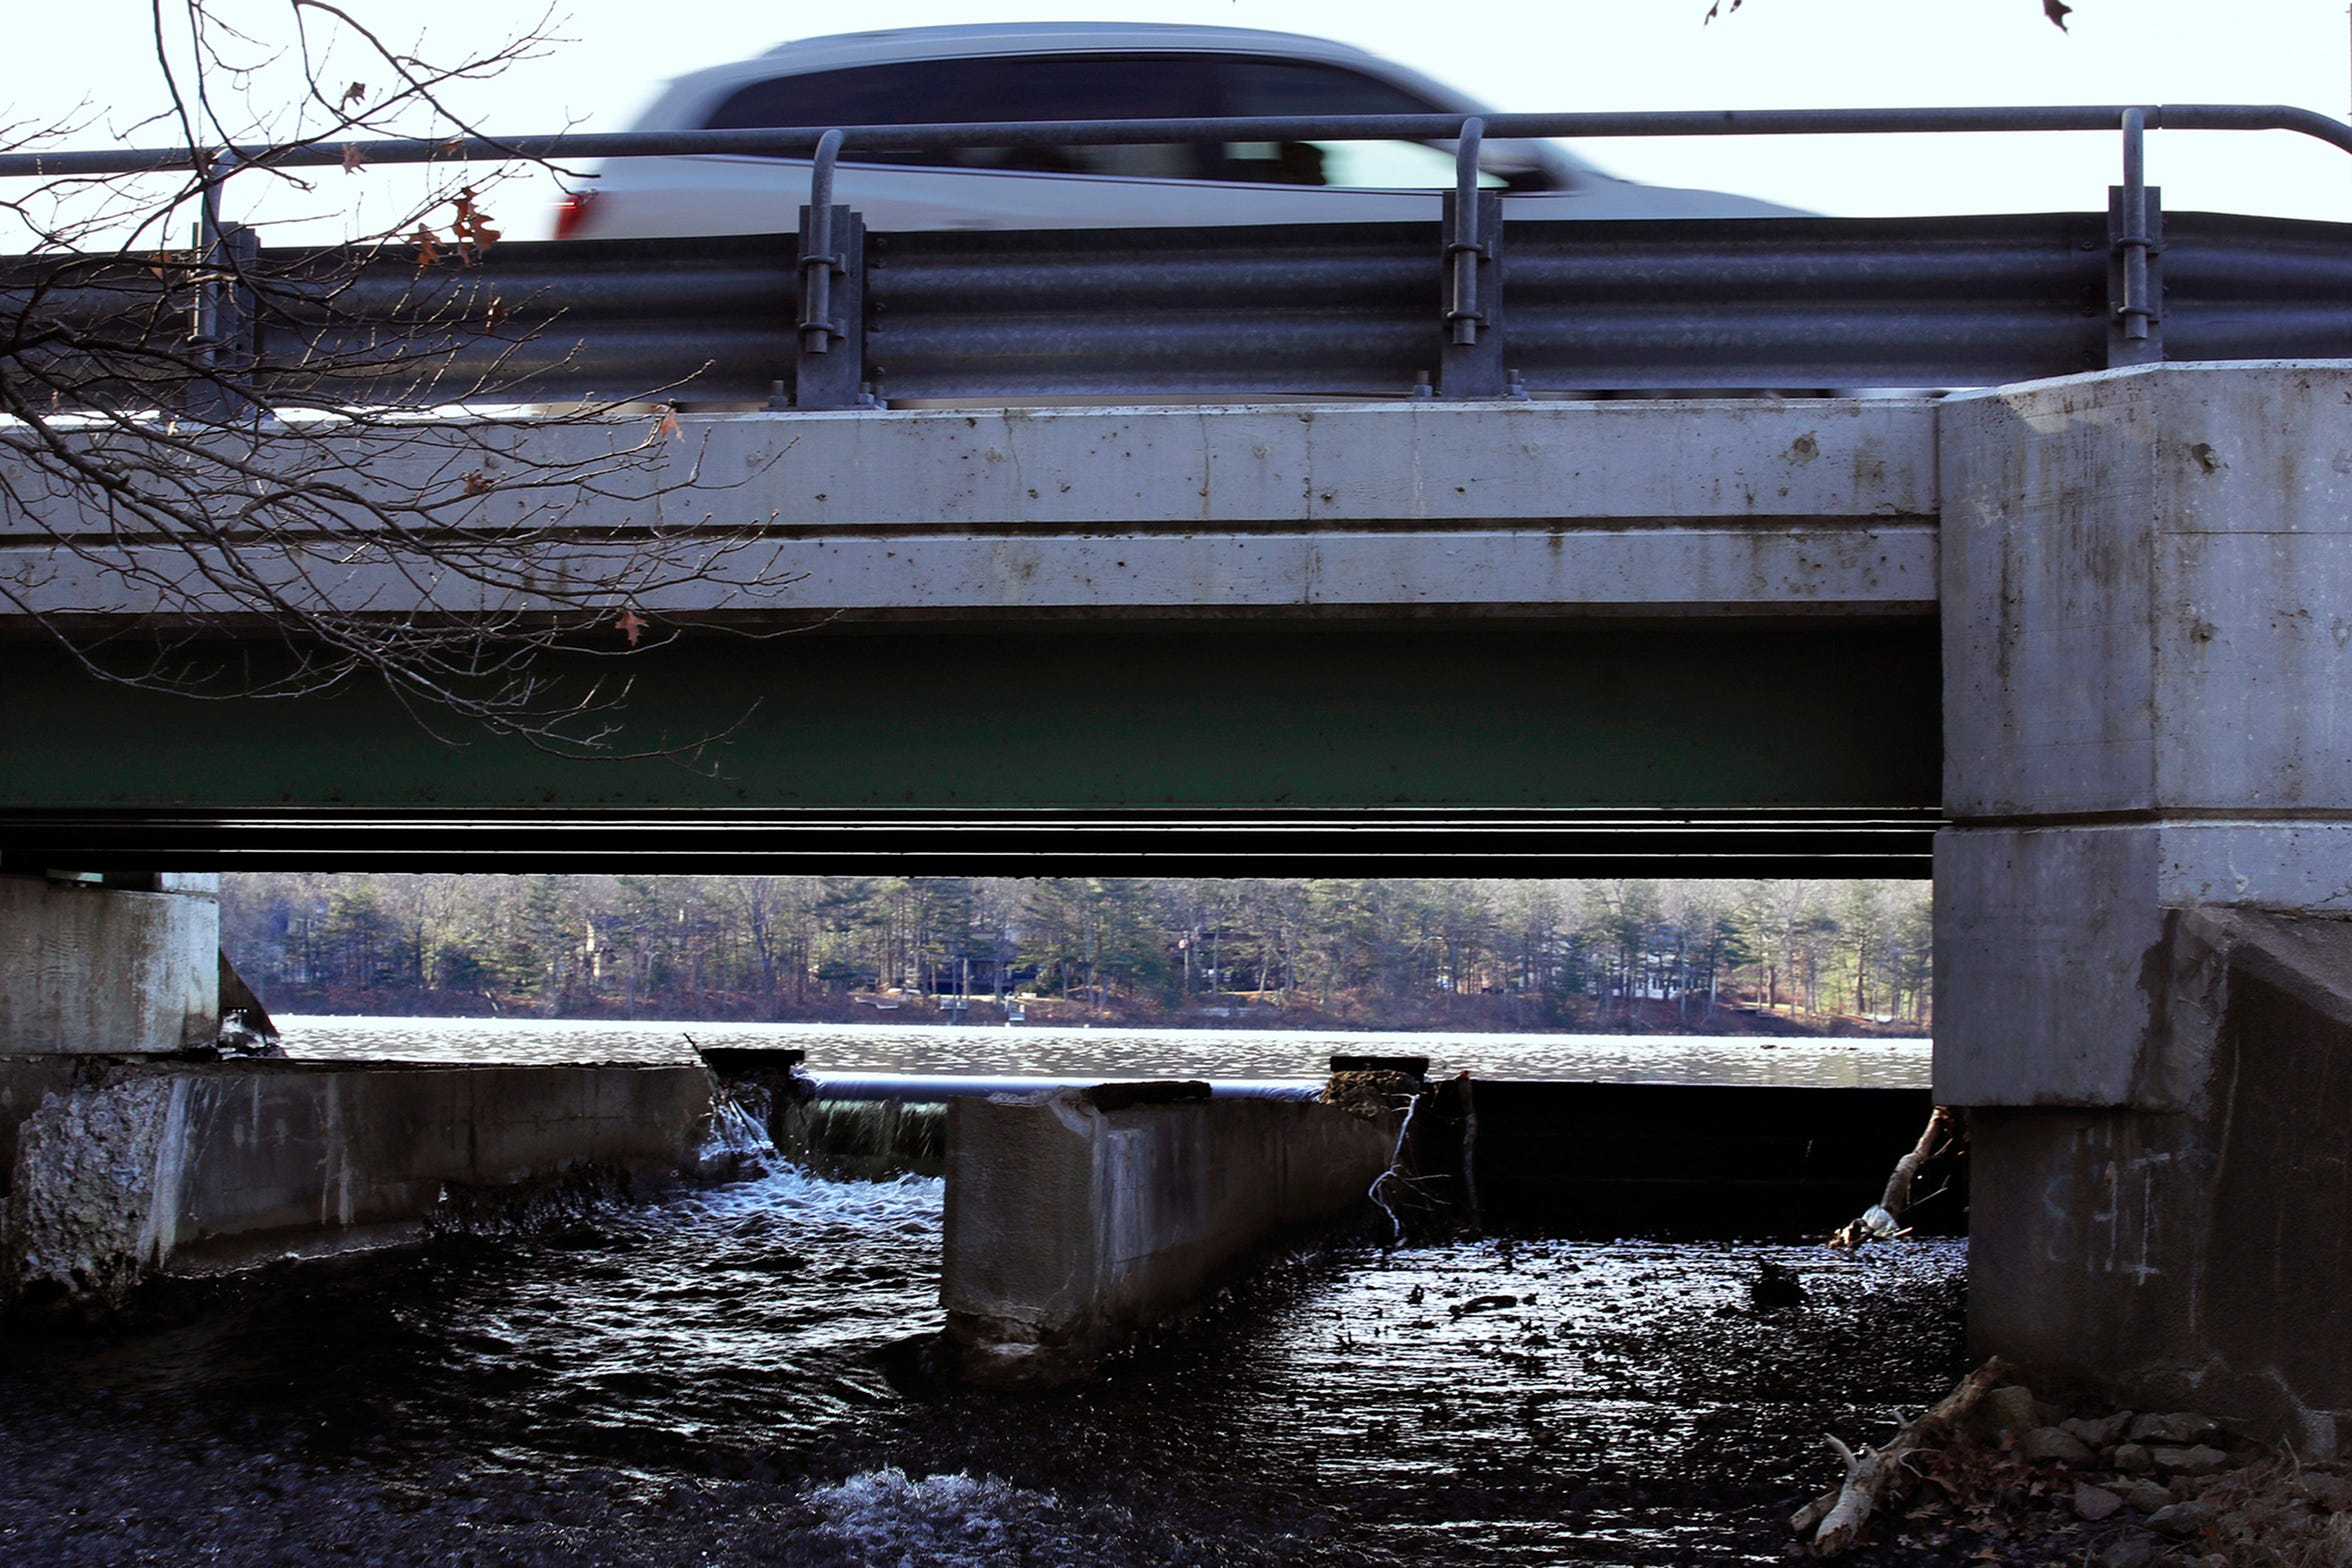 A vehicle passes over the spillway at Willett Pond on the border of Norwood and Walpole, Mass., Dec. 27, 2018. If the dam were to give way, it could send hundreds of millions of gallons of water into the heart of the Norwood, a Boston suburb of nearly 30,000 people. (AP Photo/Charles Krupa)